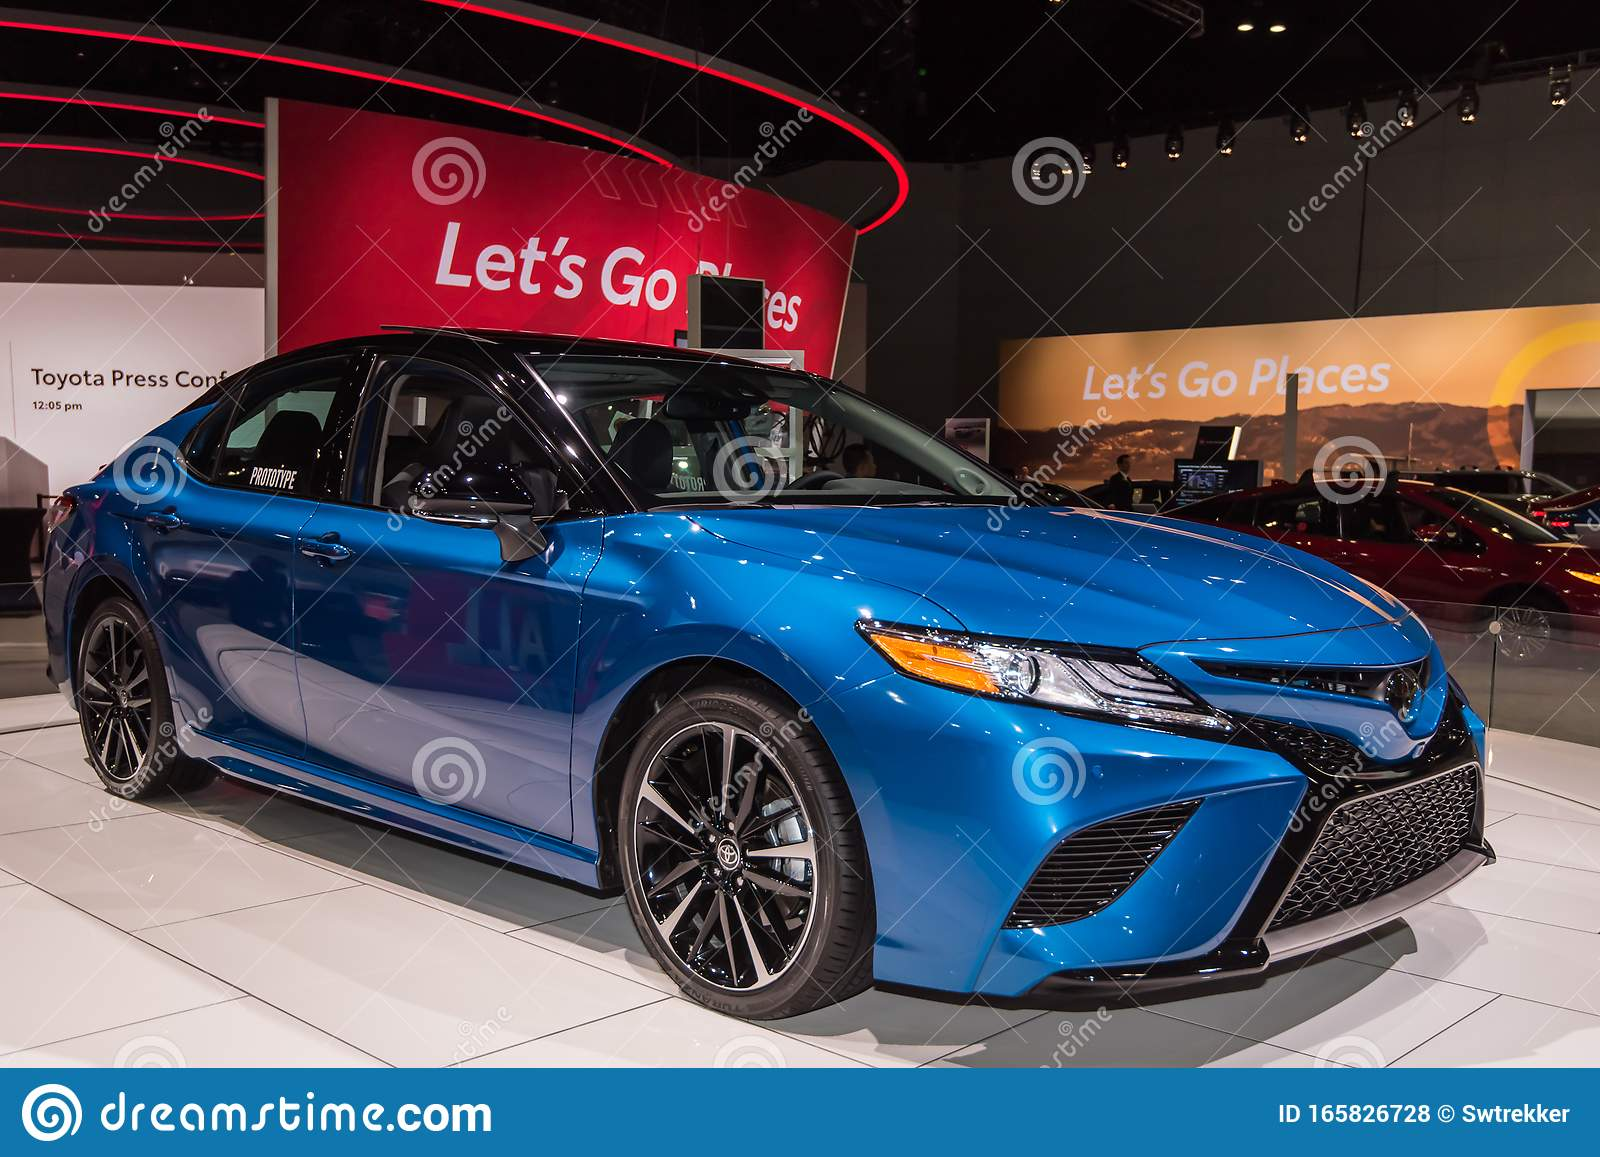 2021 toyota camry editorial stock photo image of